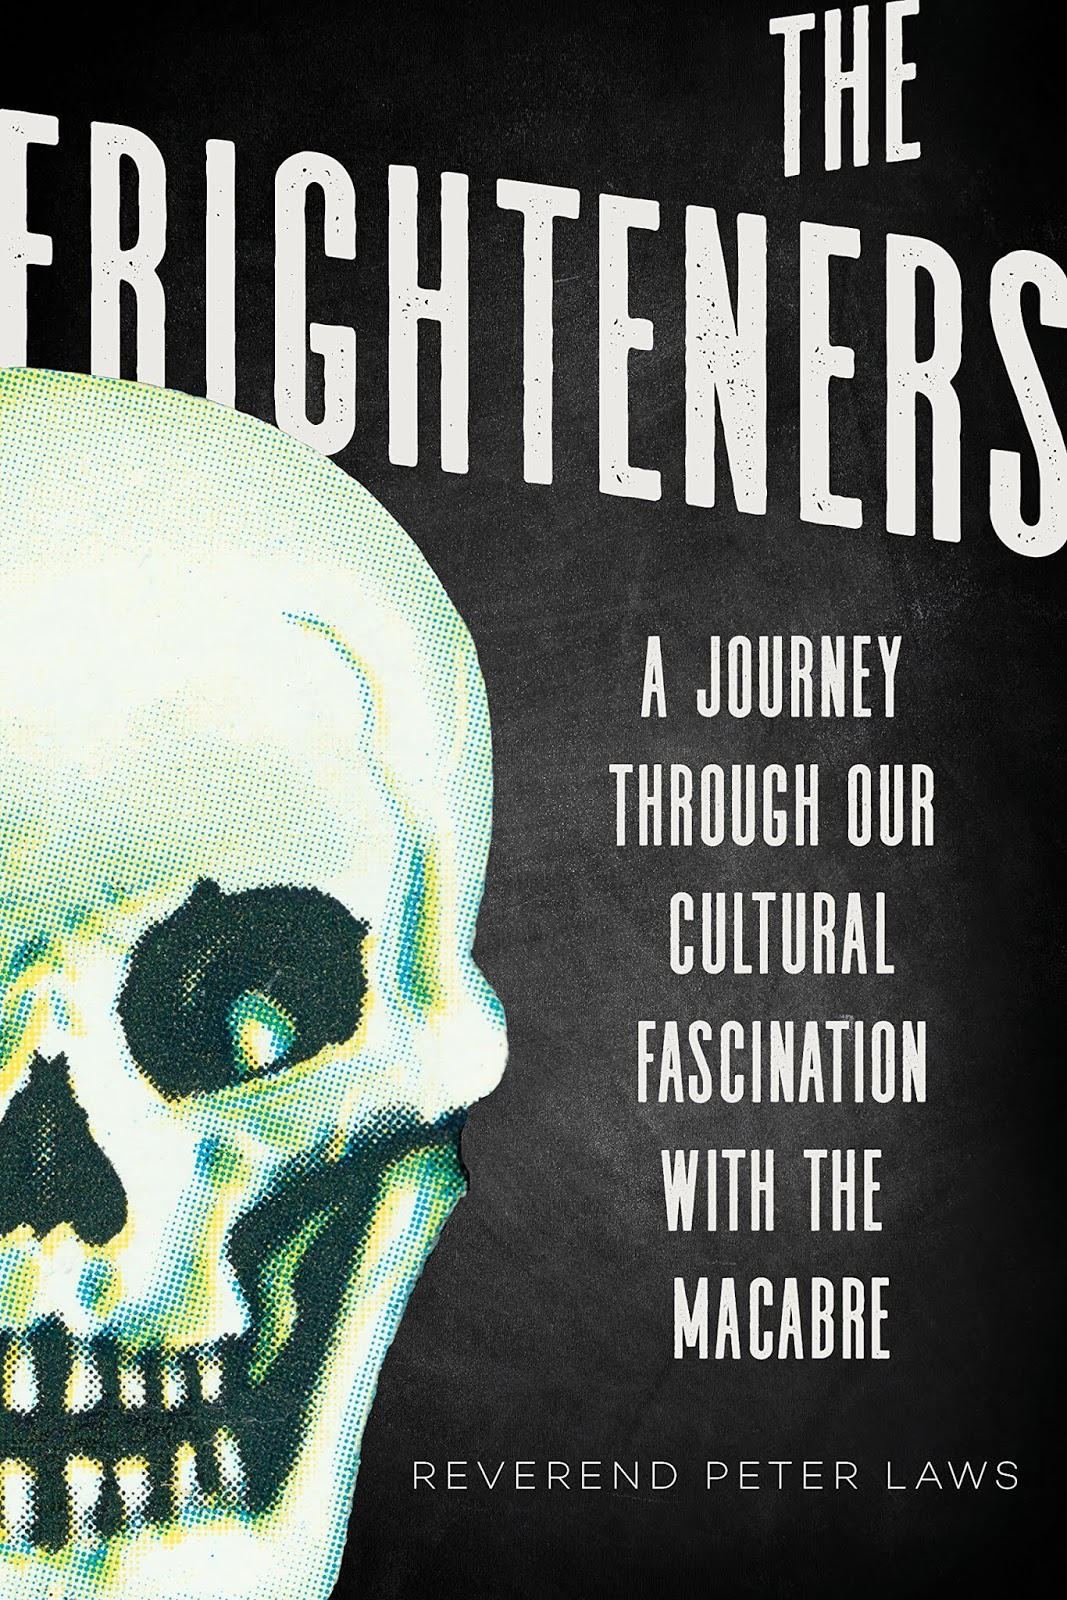 https://folkhorrorrevival.files.wordpress.com/2020/11/c5226-frighteners.jpg